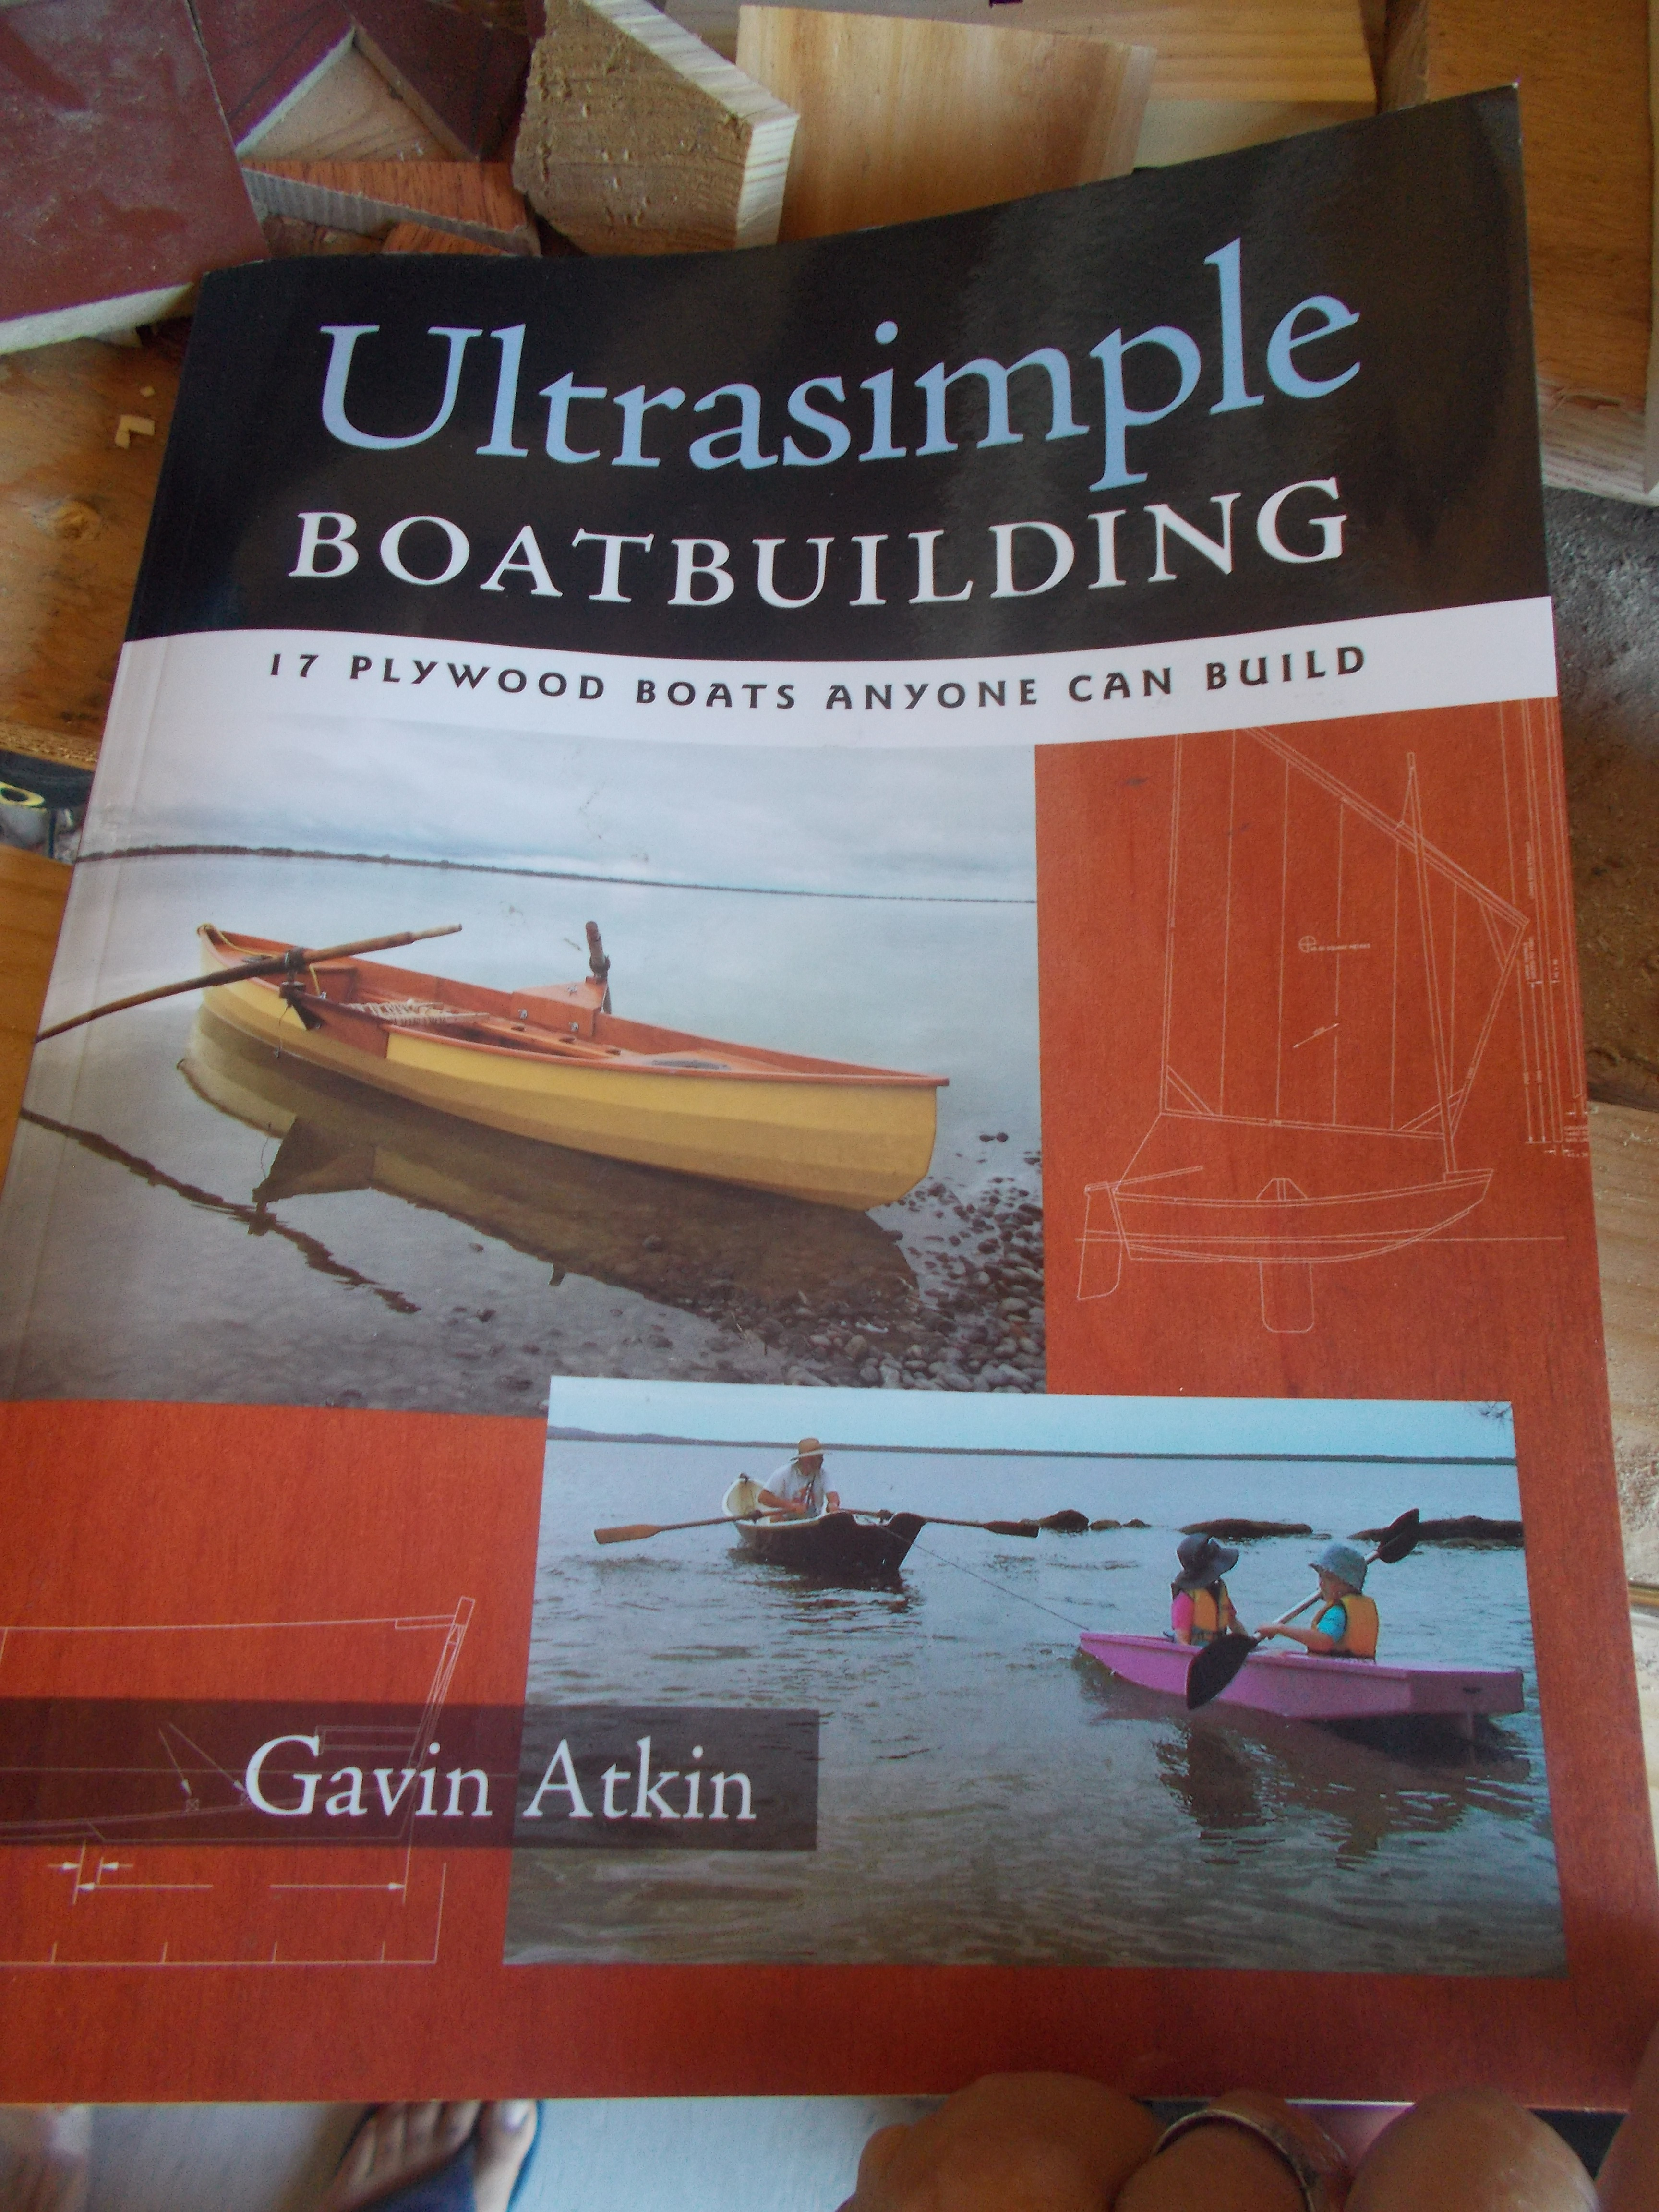 House Woodworking And Gardening Family Wooden Model Boat Building Books